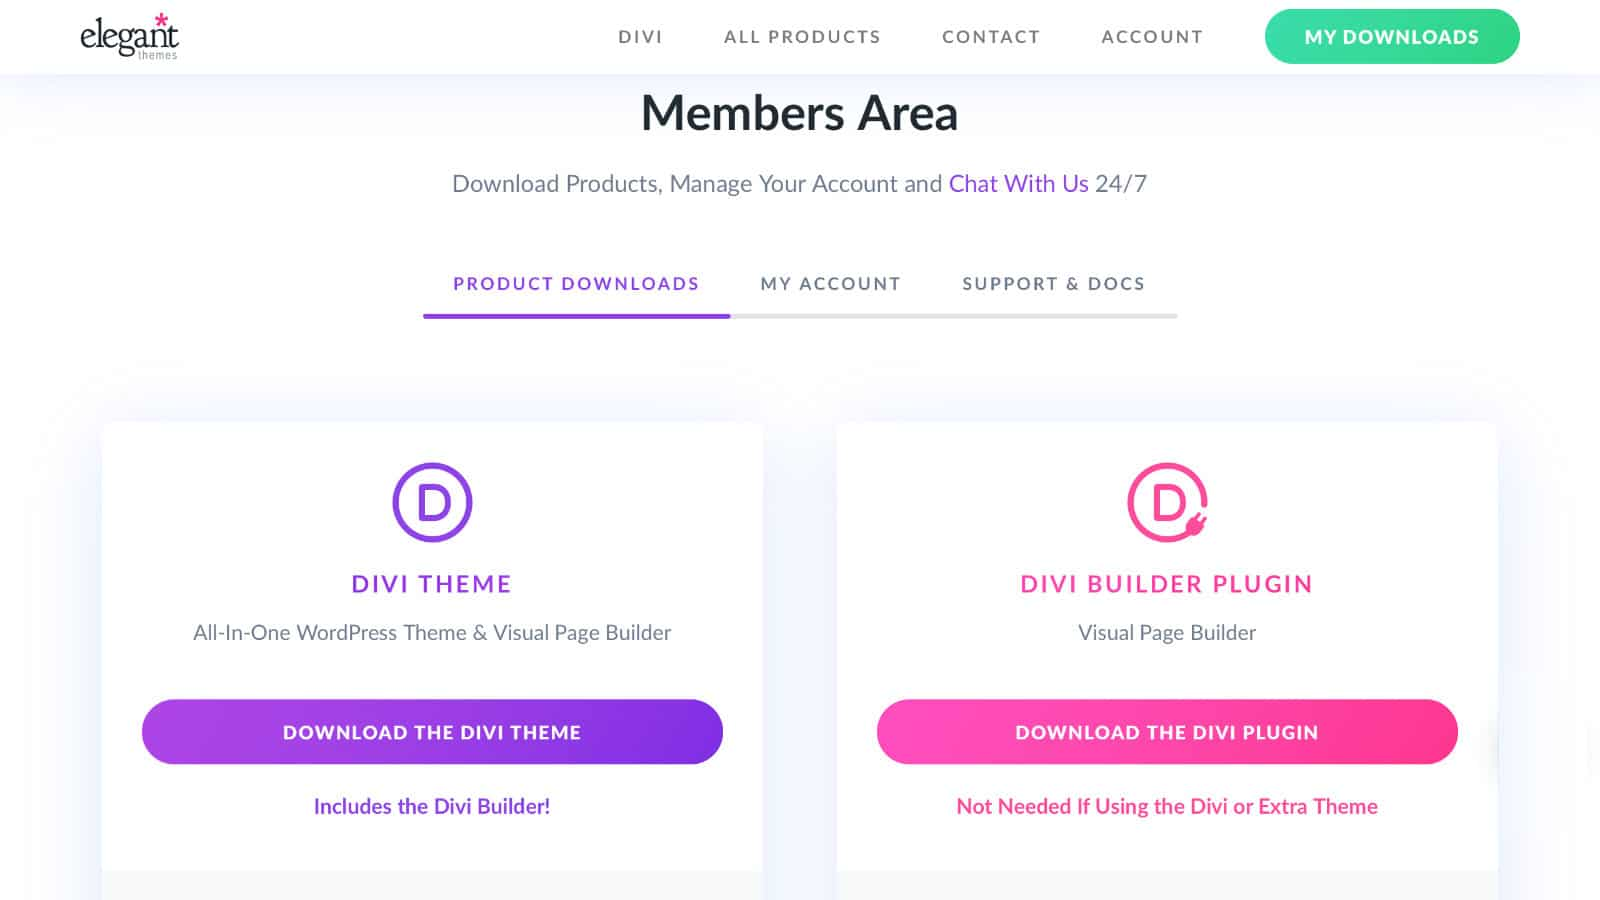 Divi Theme installieren: Download